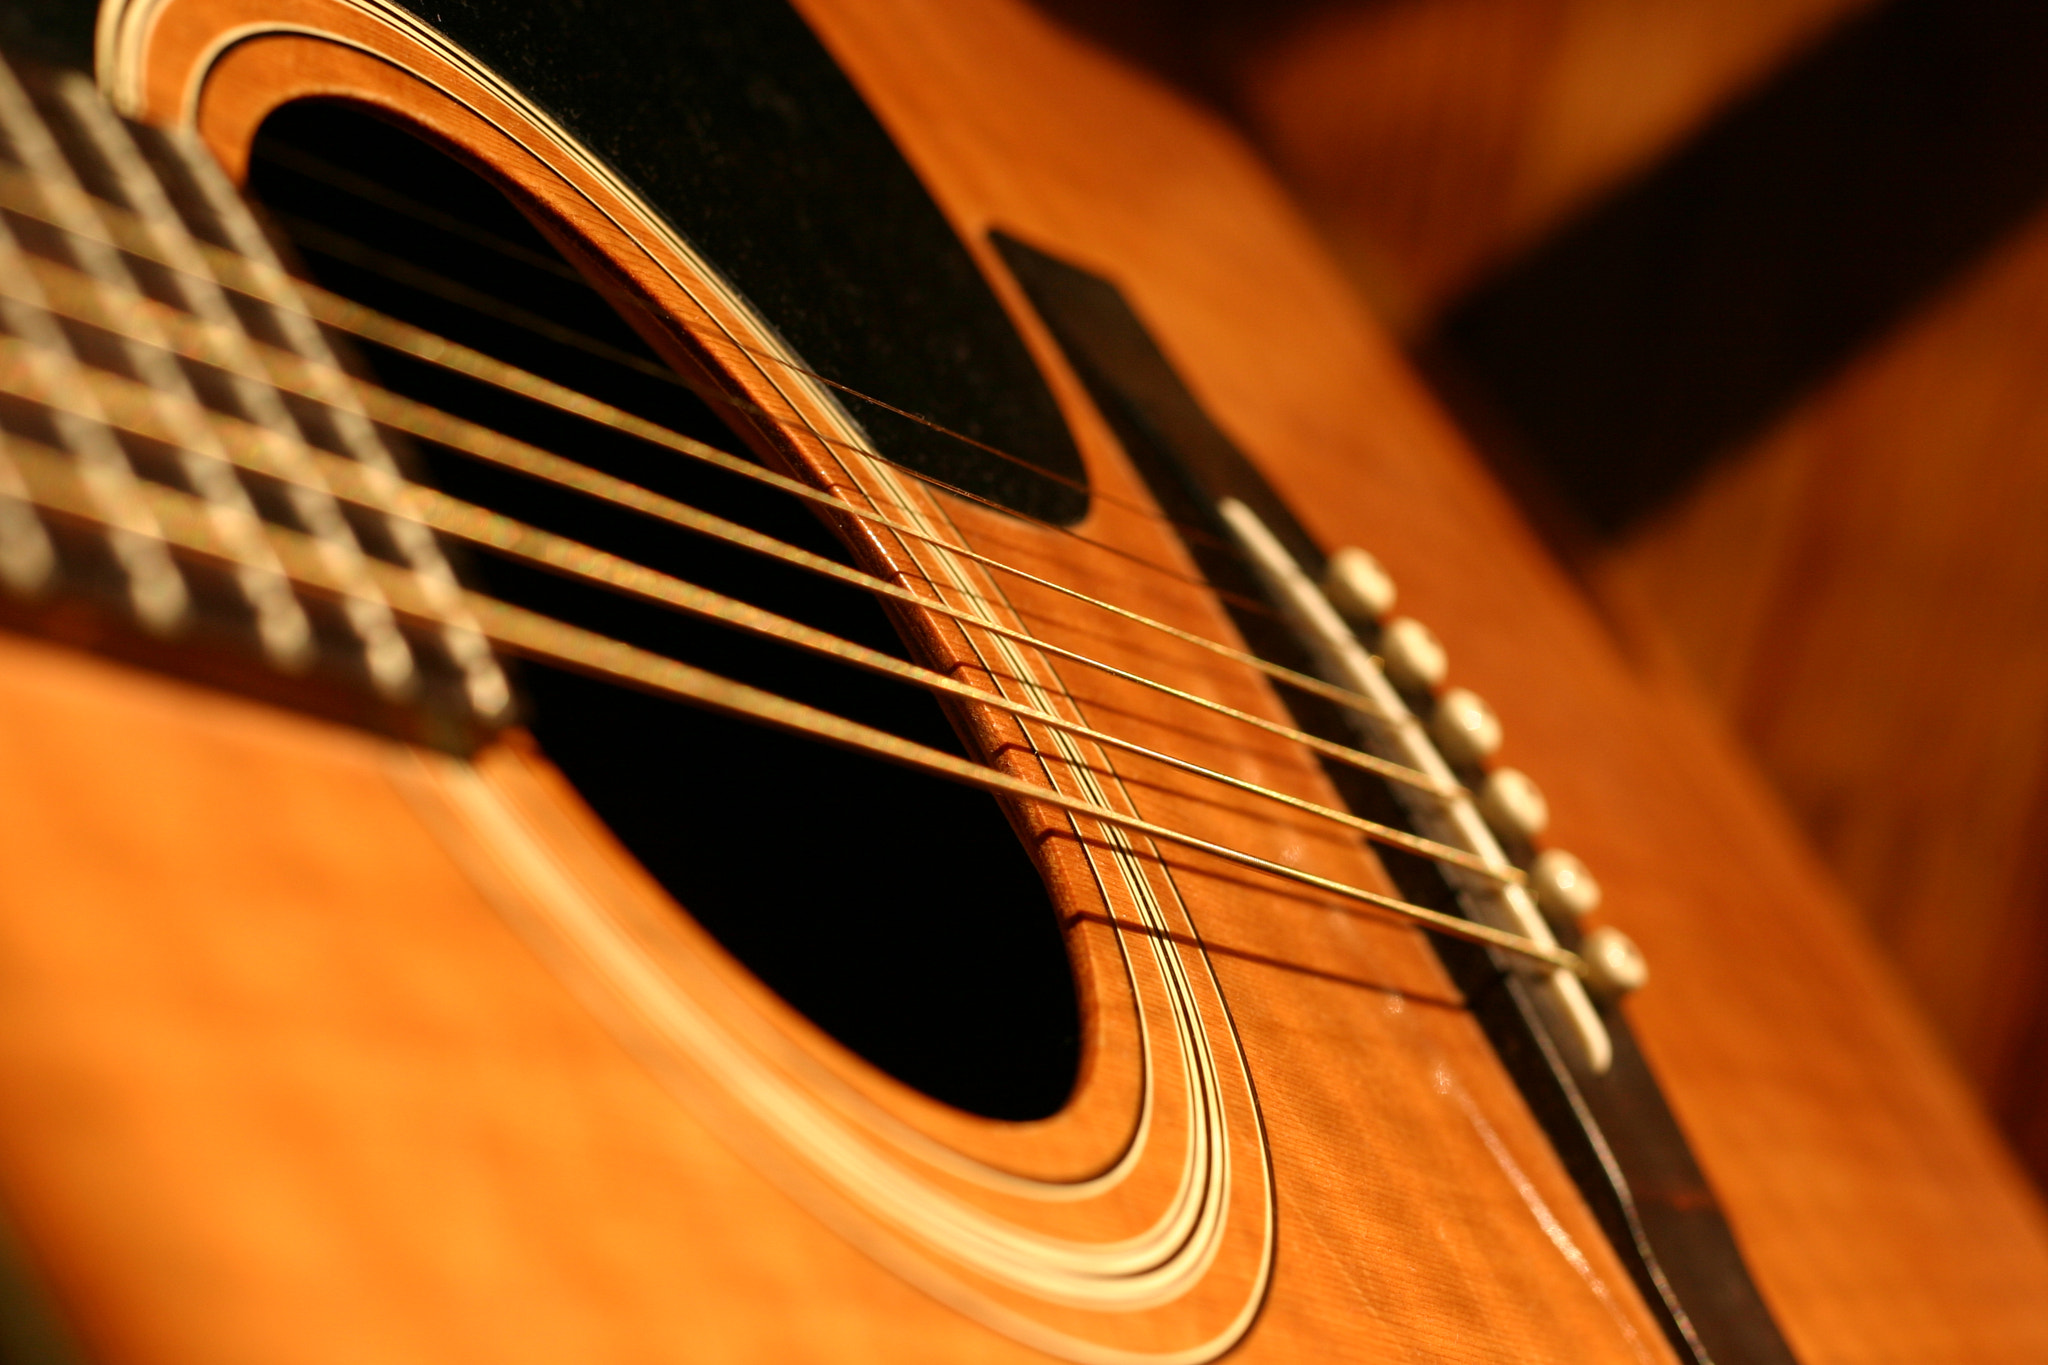 Photograph Guitar in Afternoon Light by Matt M. on 500px